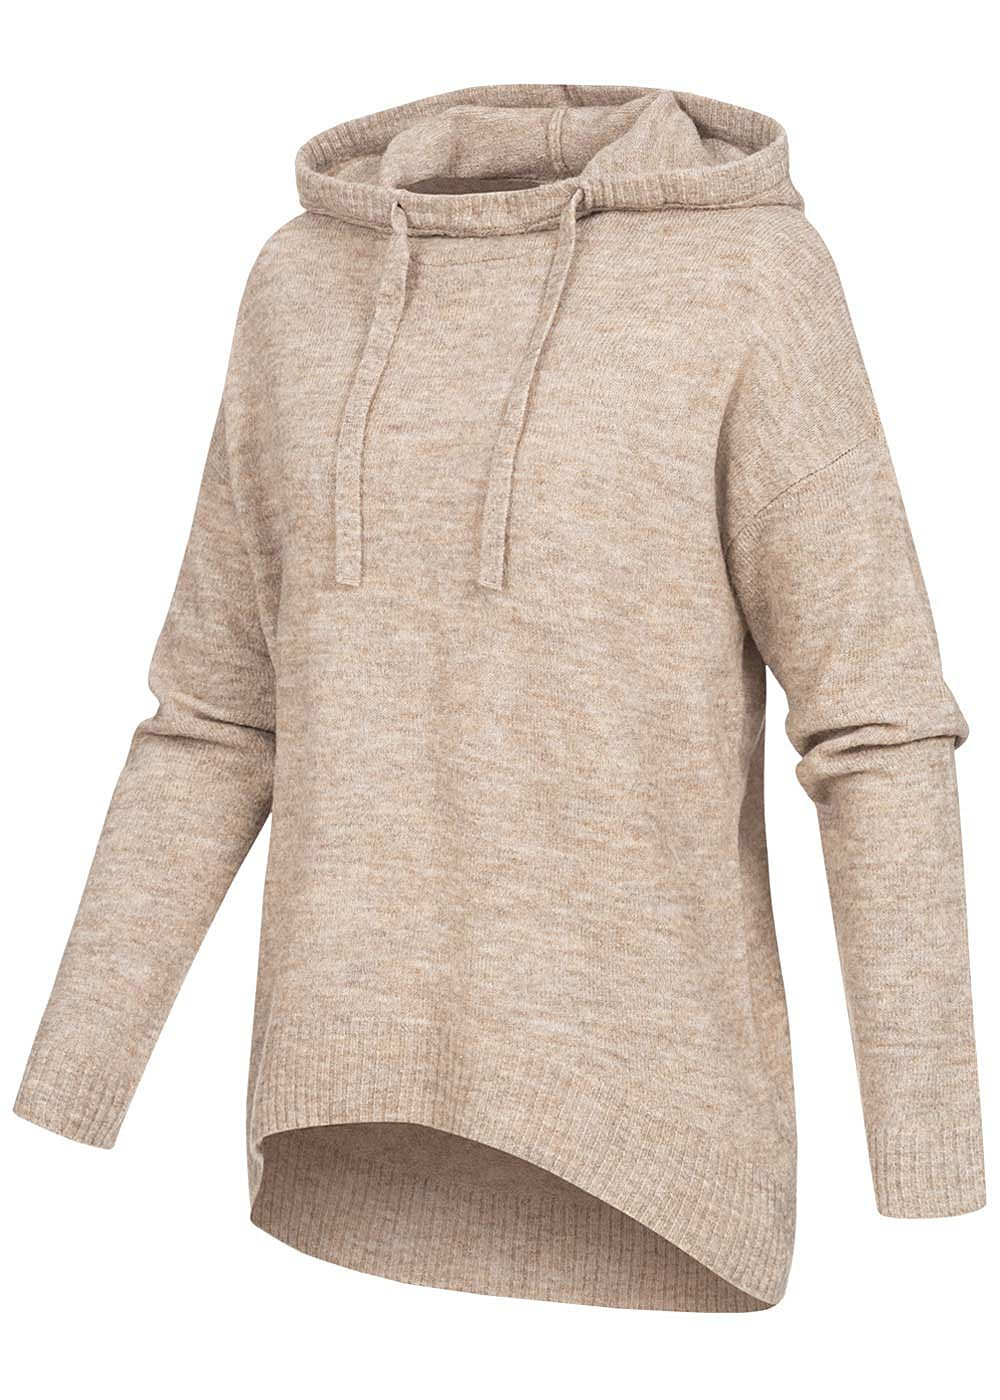 ONLY Damen Strick Hoodie Pullover mit Kapuze Tunnelzug Vokuhila toasted coconut beige - Art.-Nr.: 20094425